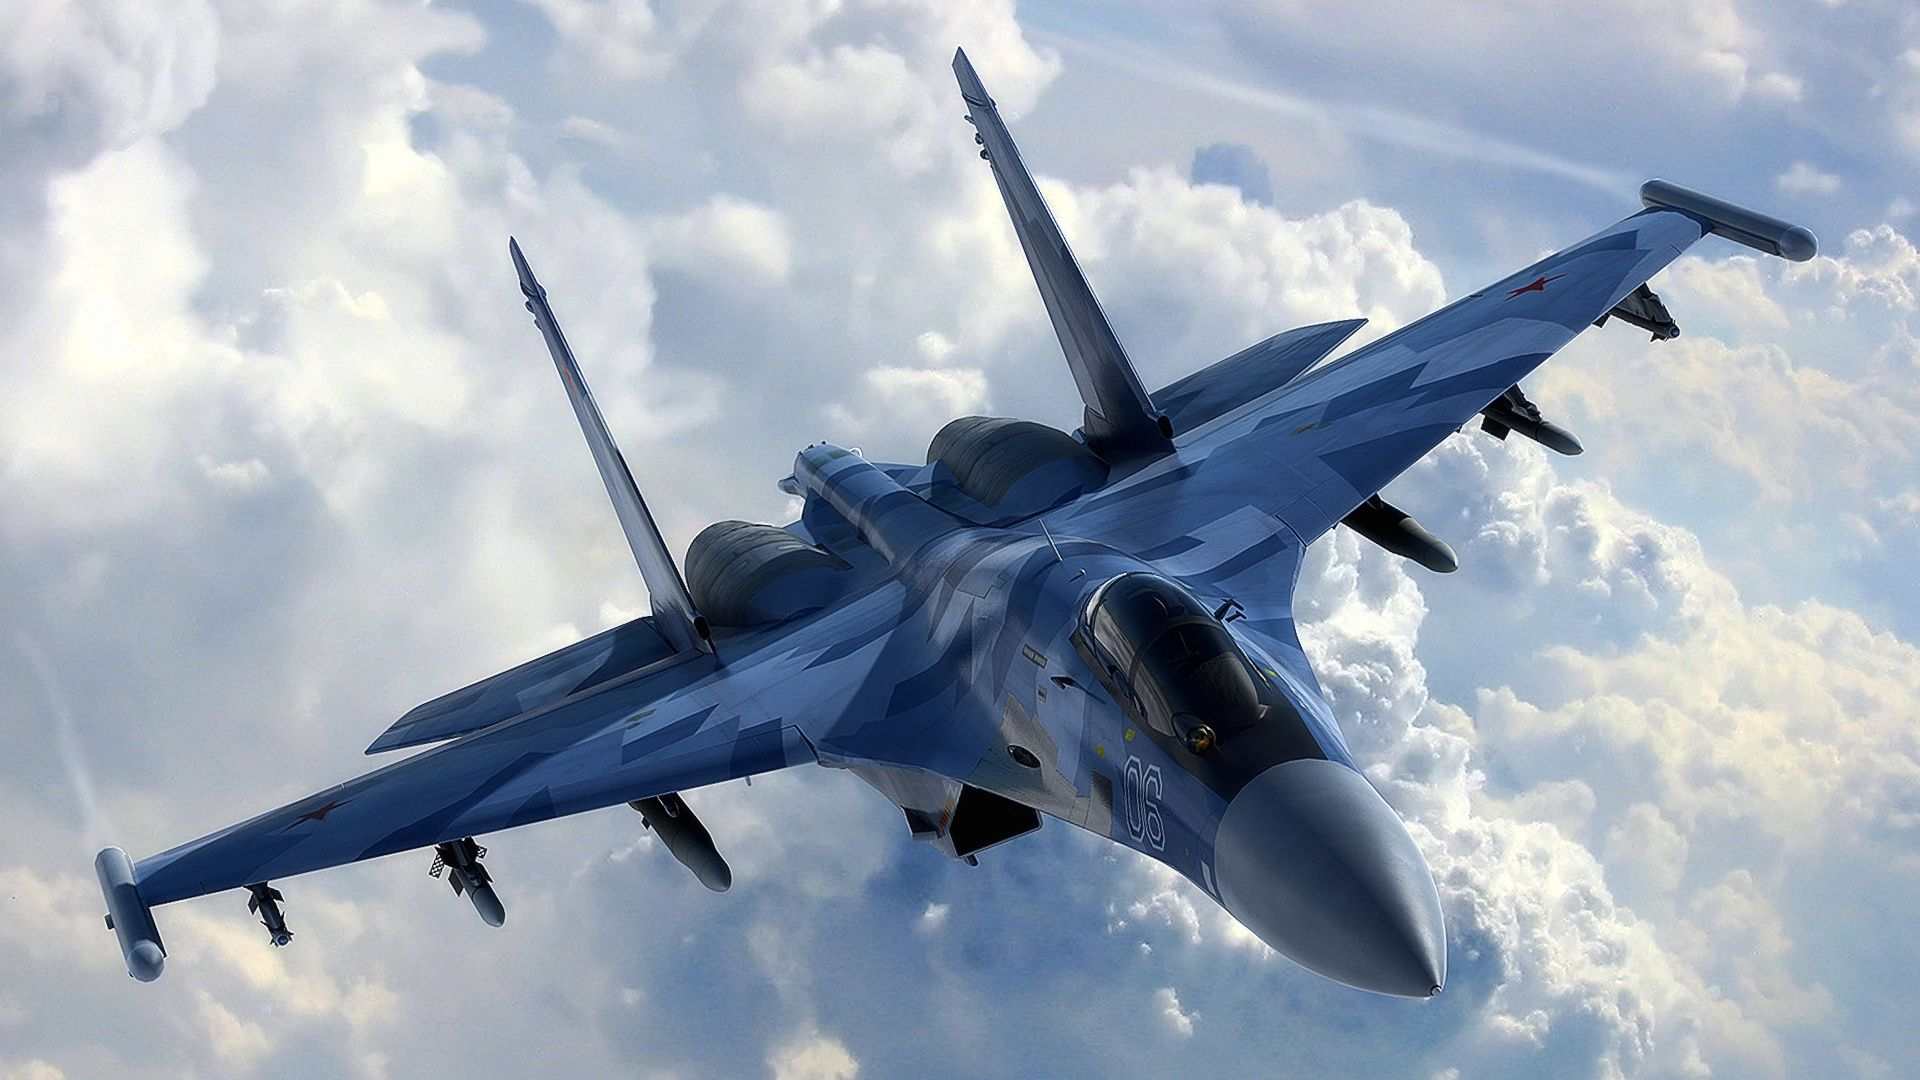 aircraft air superiority fighter fighters jet military sukhoi su-35